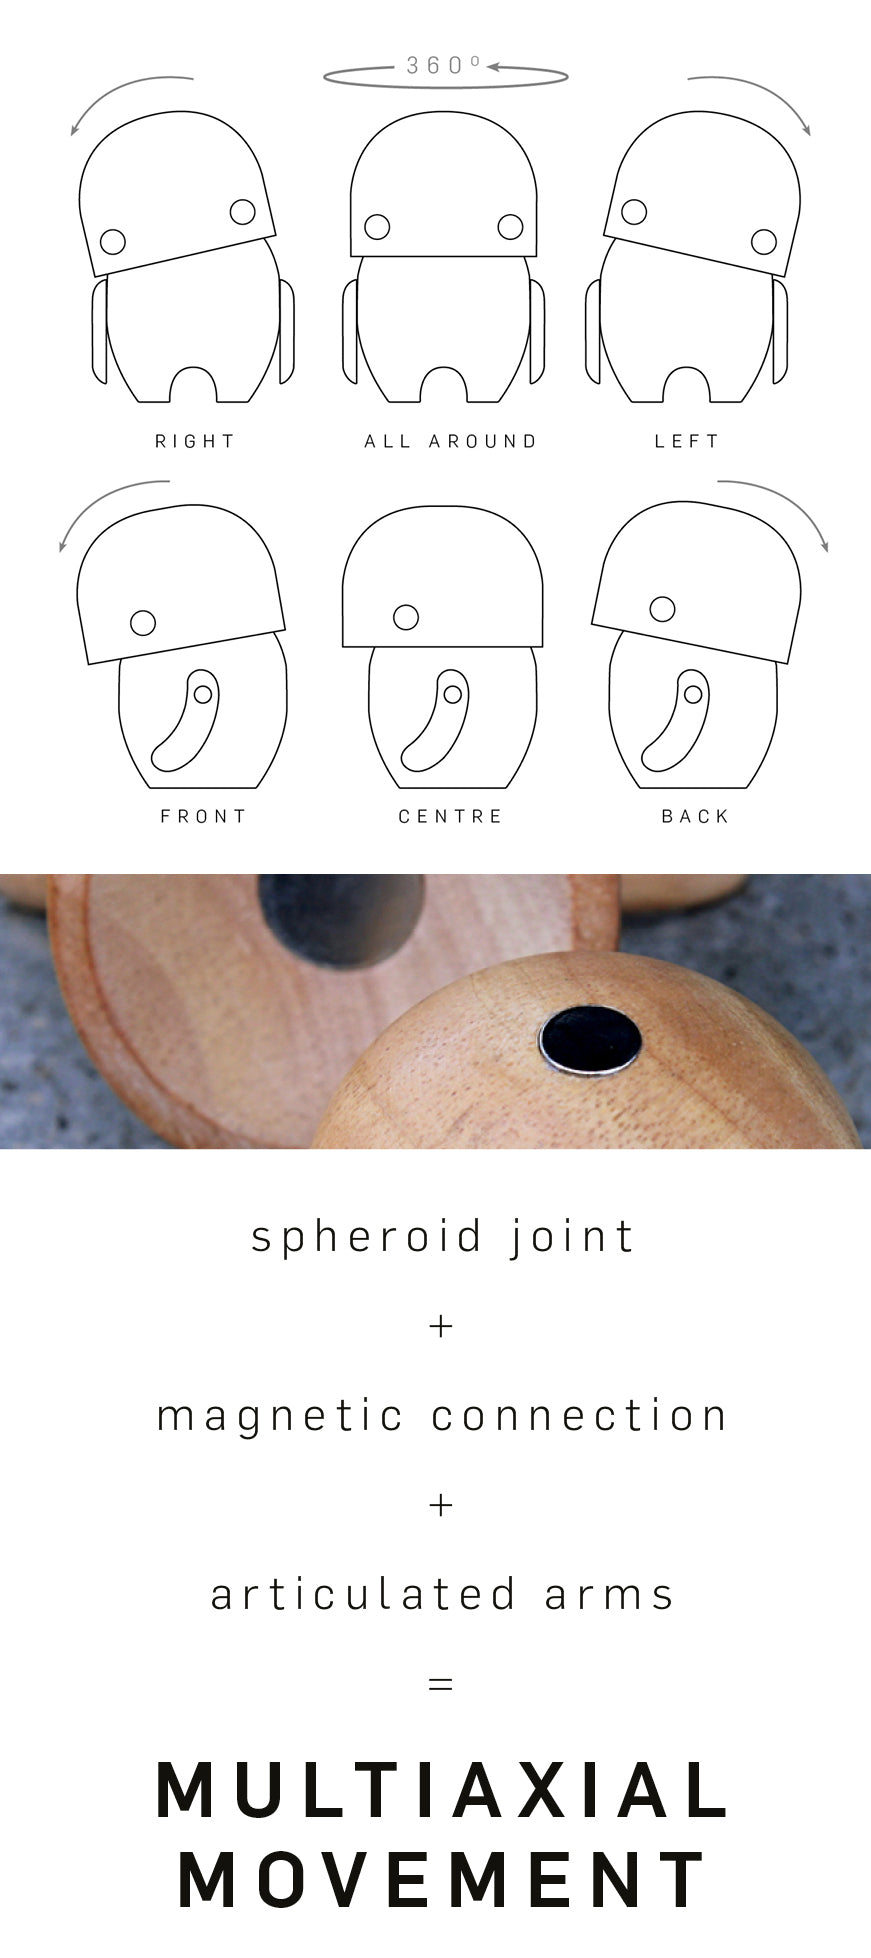 wood design diagram noferin pecanpals spheroid joint magnetic connection